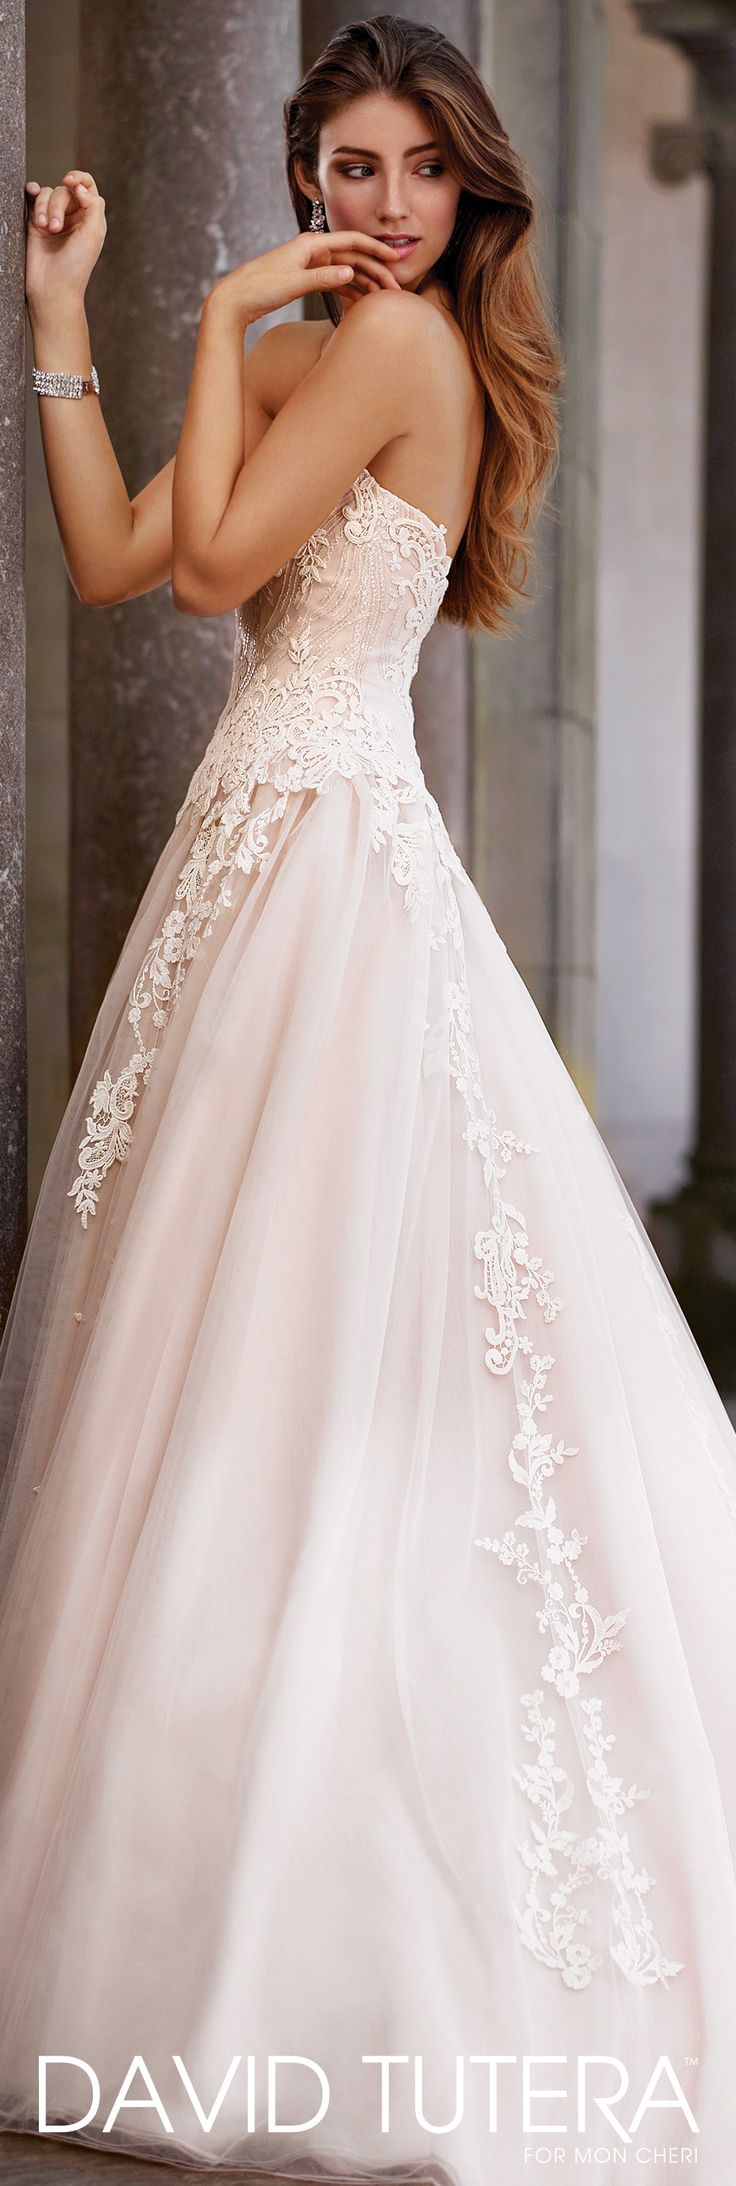 1440 best my wedding dress dream images on pinterest marriage lace a line sweetheart neckline wedding dress 117267 topaz ombrellifo Image collections